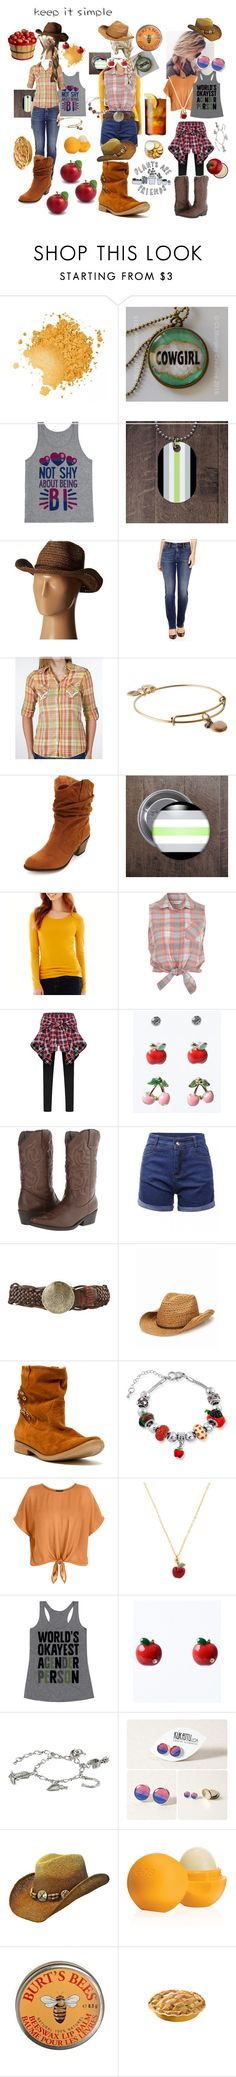 """🍎HONESTY🍎"" by the-problematicfave ❤ liked on Polyvore featuring San Diego Hat Co., St. John's Bay, Roar, Alex and Ani, Charlotte Russe, Miss Selfridge, Madden Girl, Forever 21, Qupid and New Look"